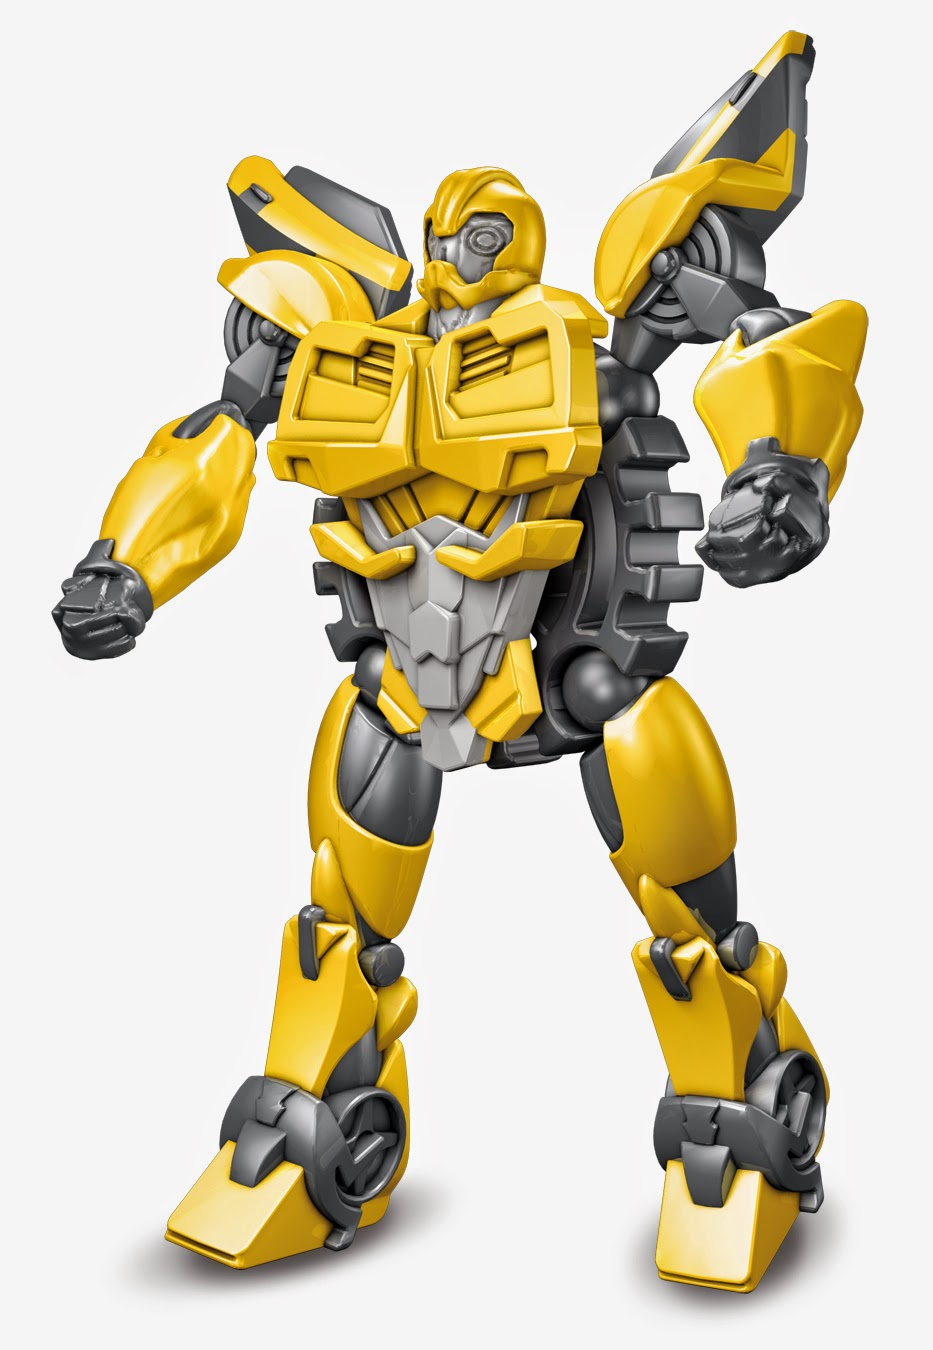 KINDER® SURPRISE® Bumblebee